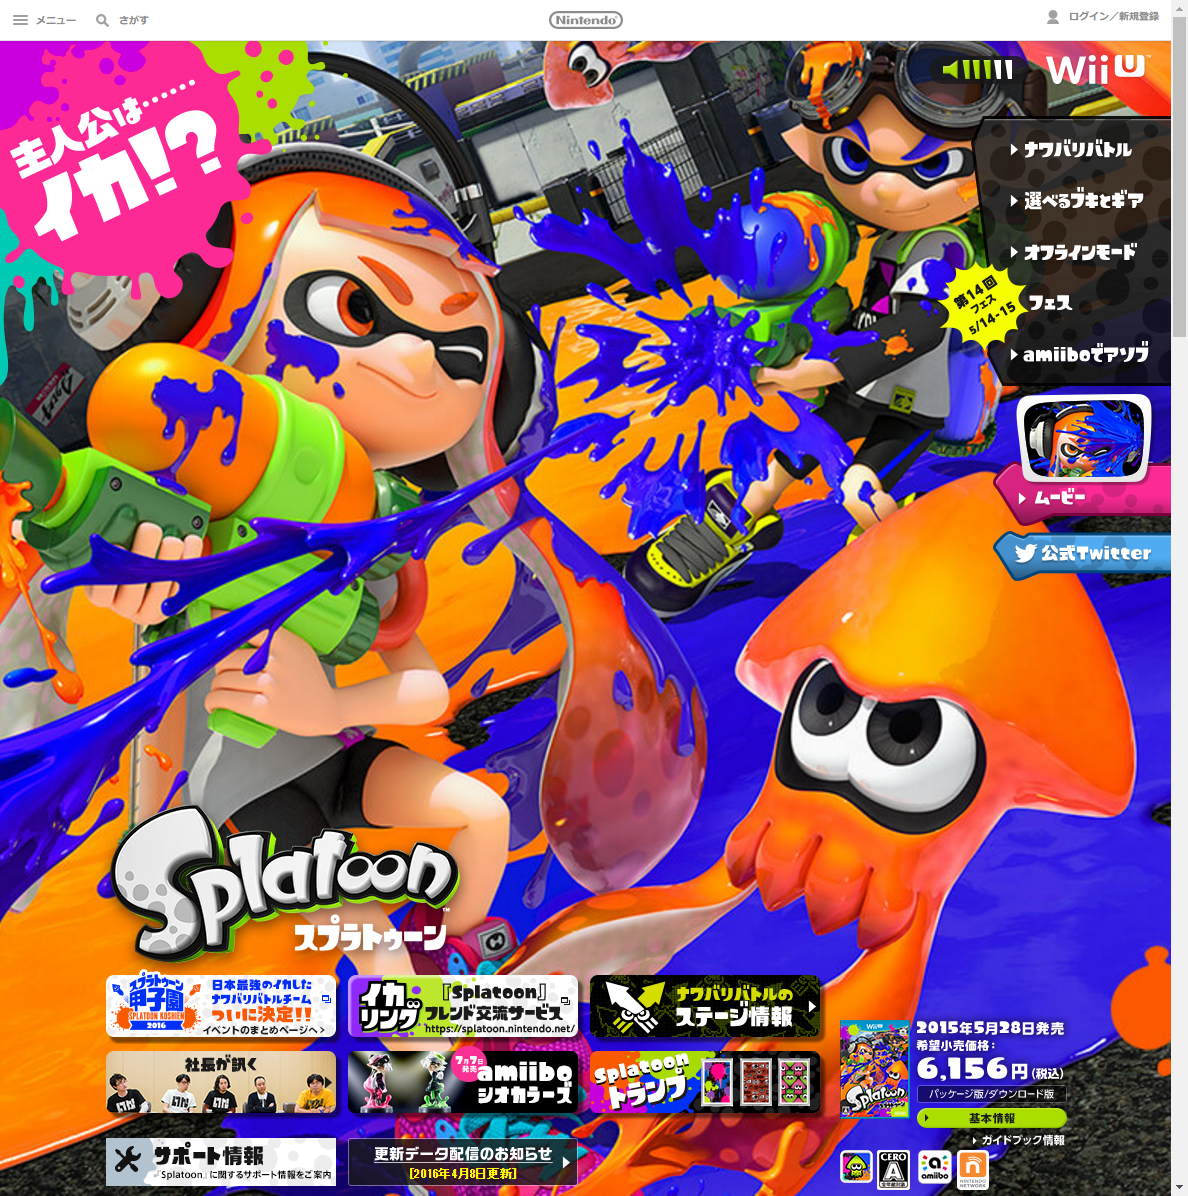 splatoon-official-support-site-official-site